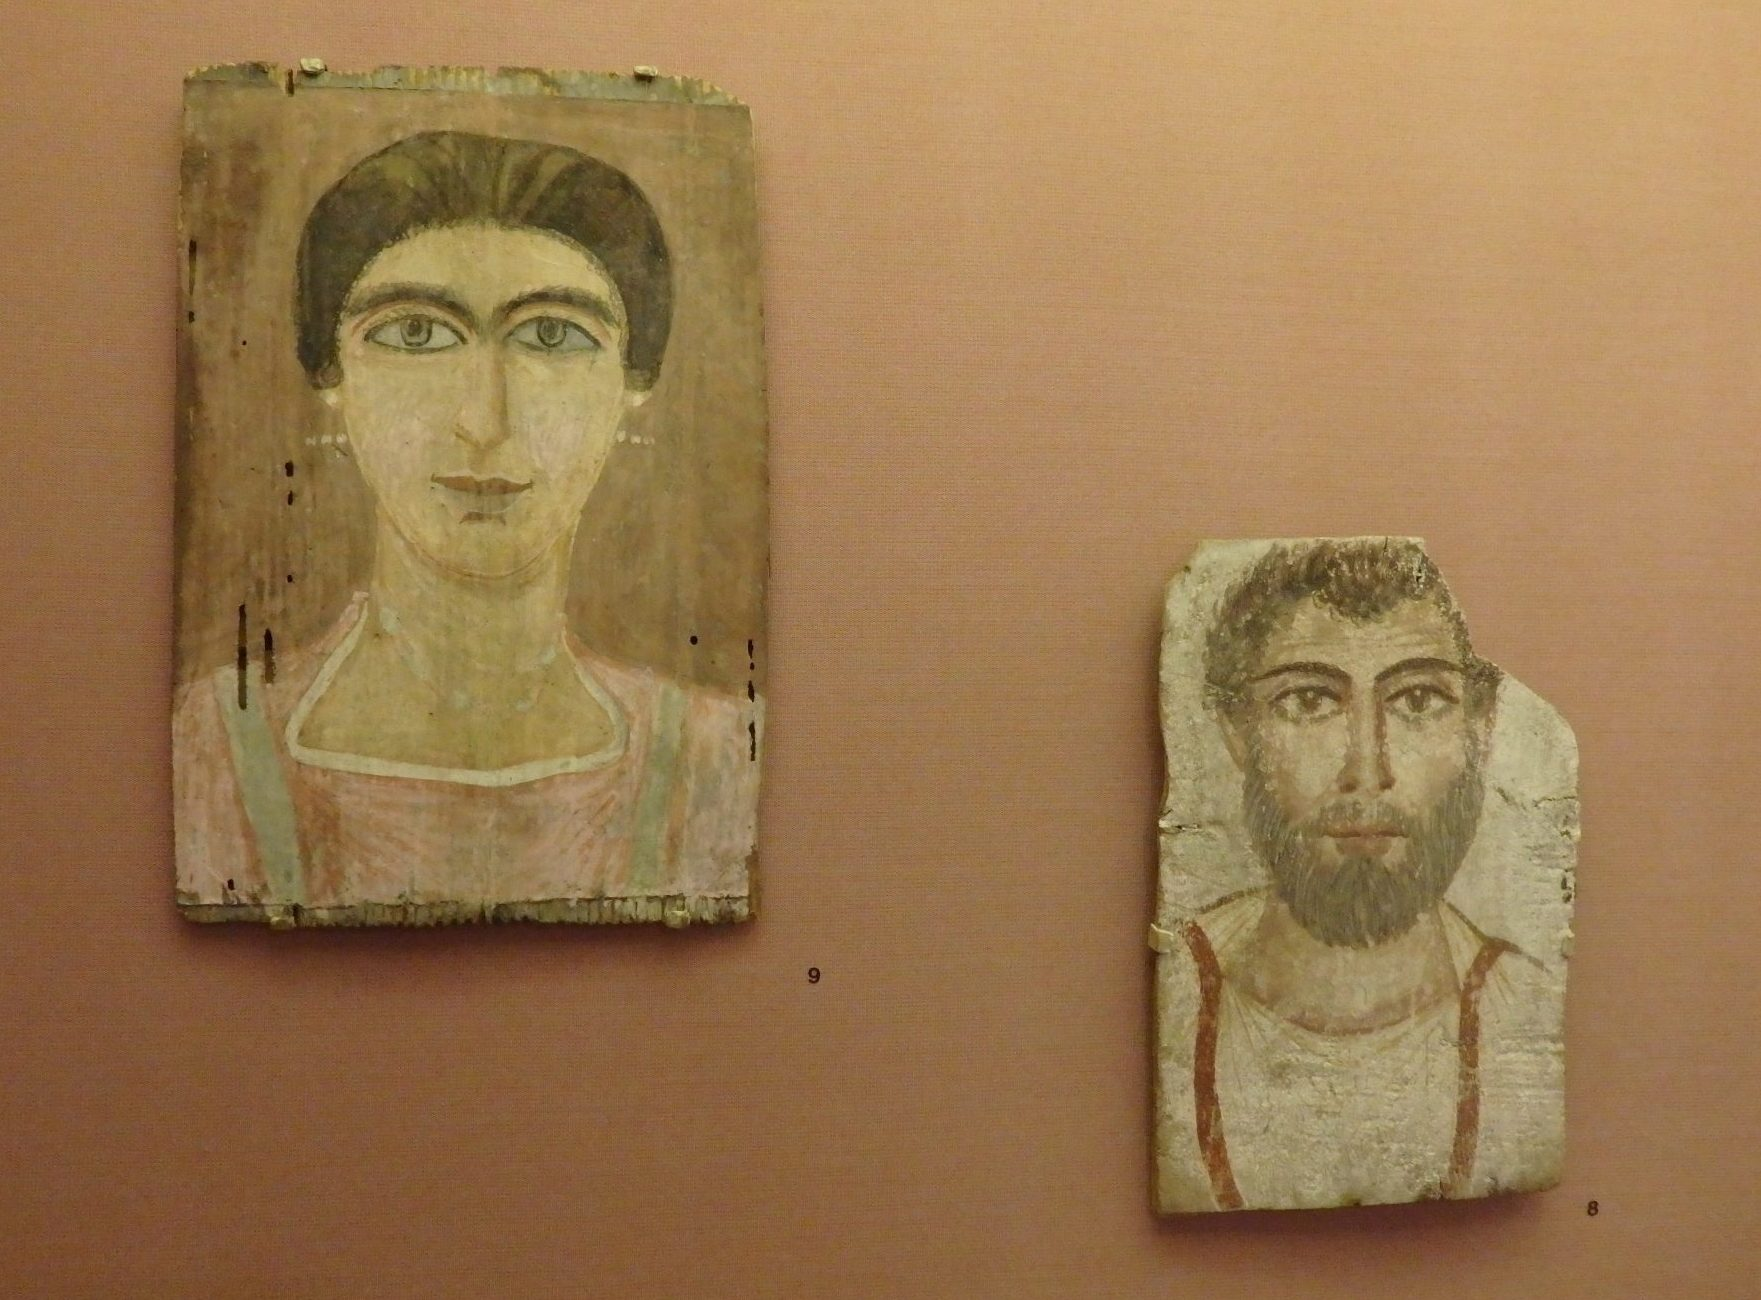 Early Christian-era mummy portraits painted on wood. The one on the right is from ca. 270-330 CE, while the left-hand portrait is from ca. 350 CE. Bible Lands Museum, Jerusalem, Israel